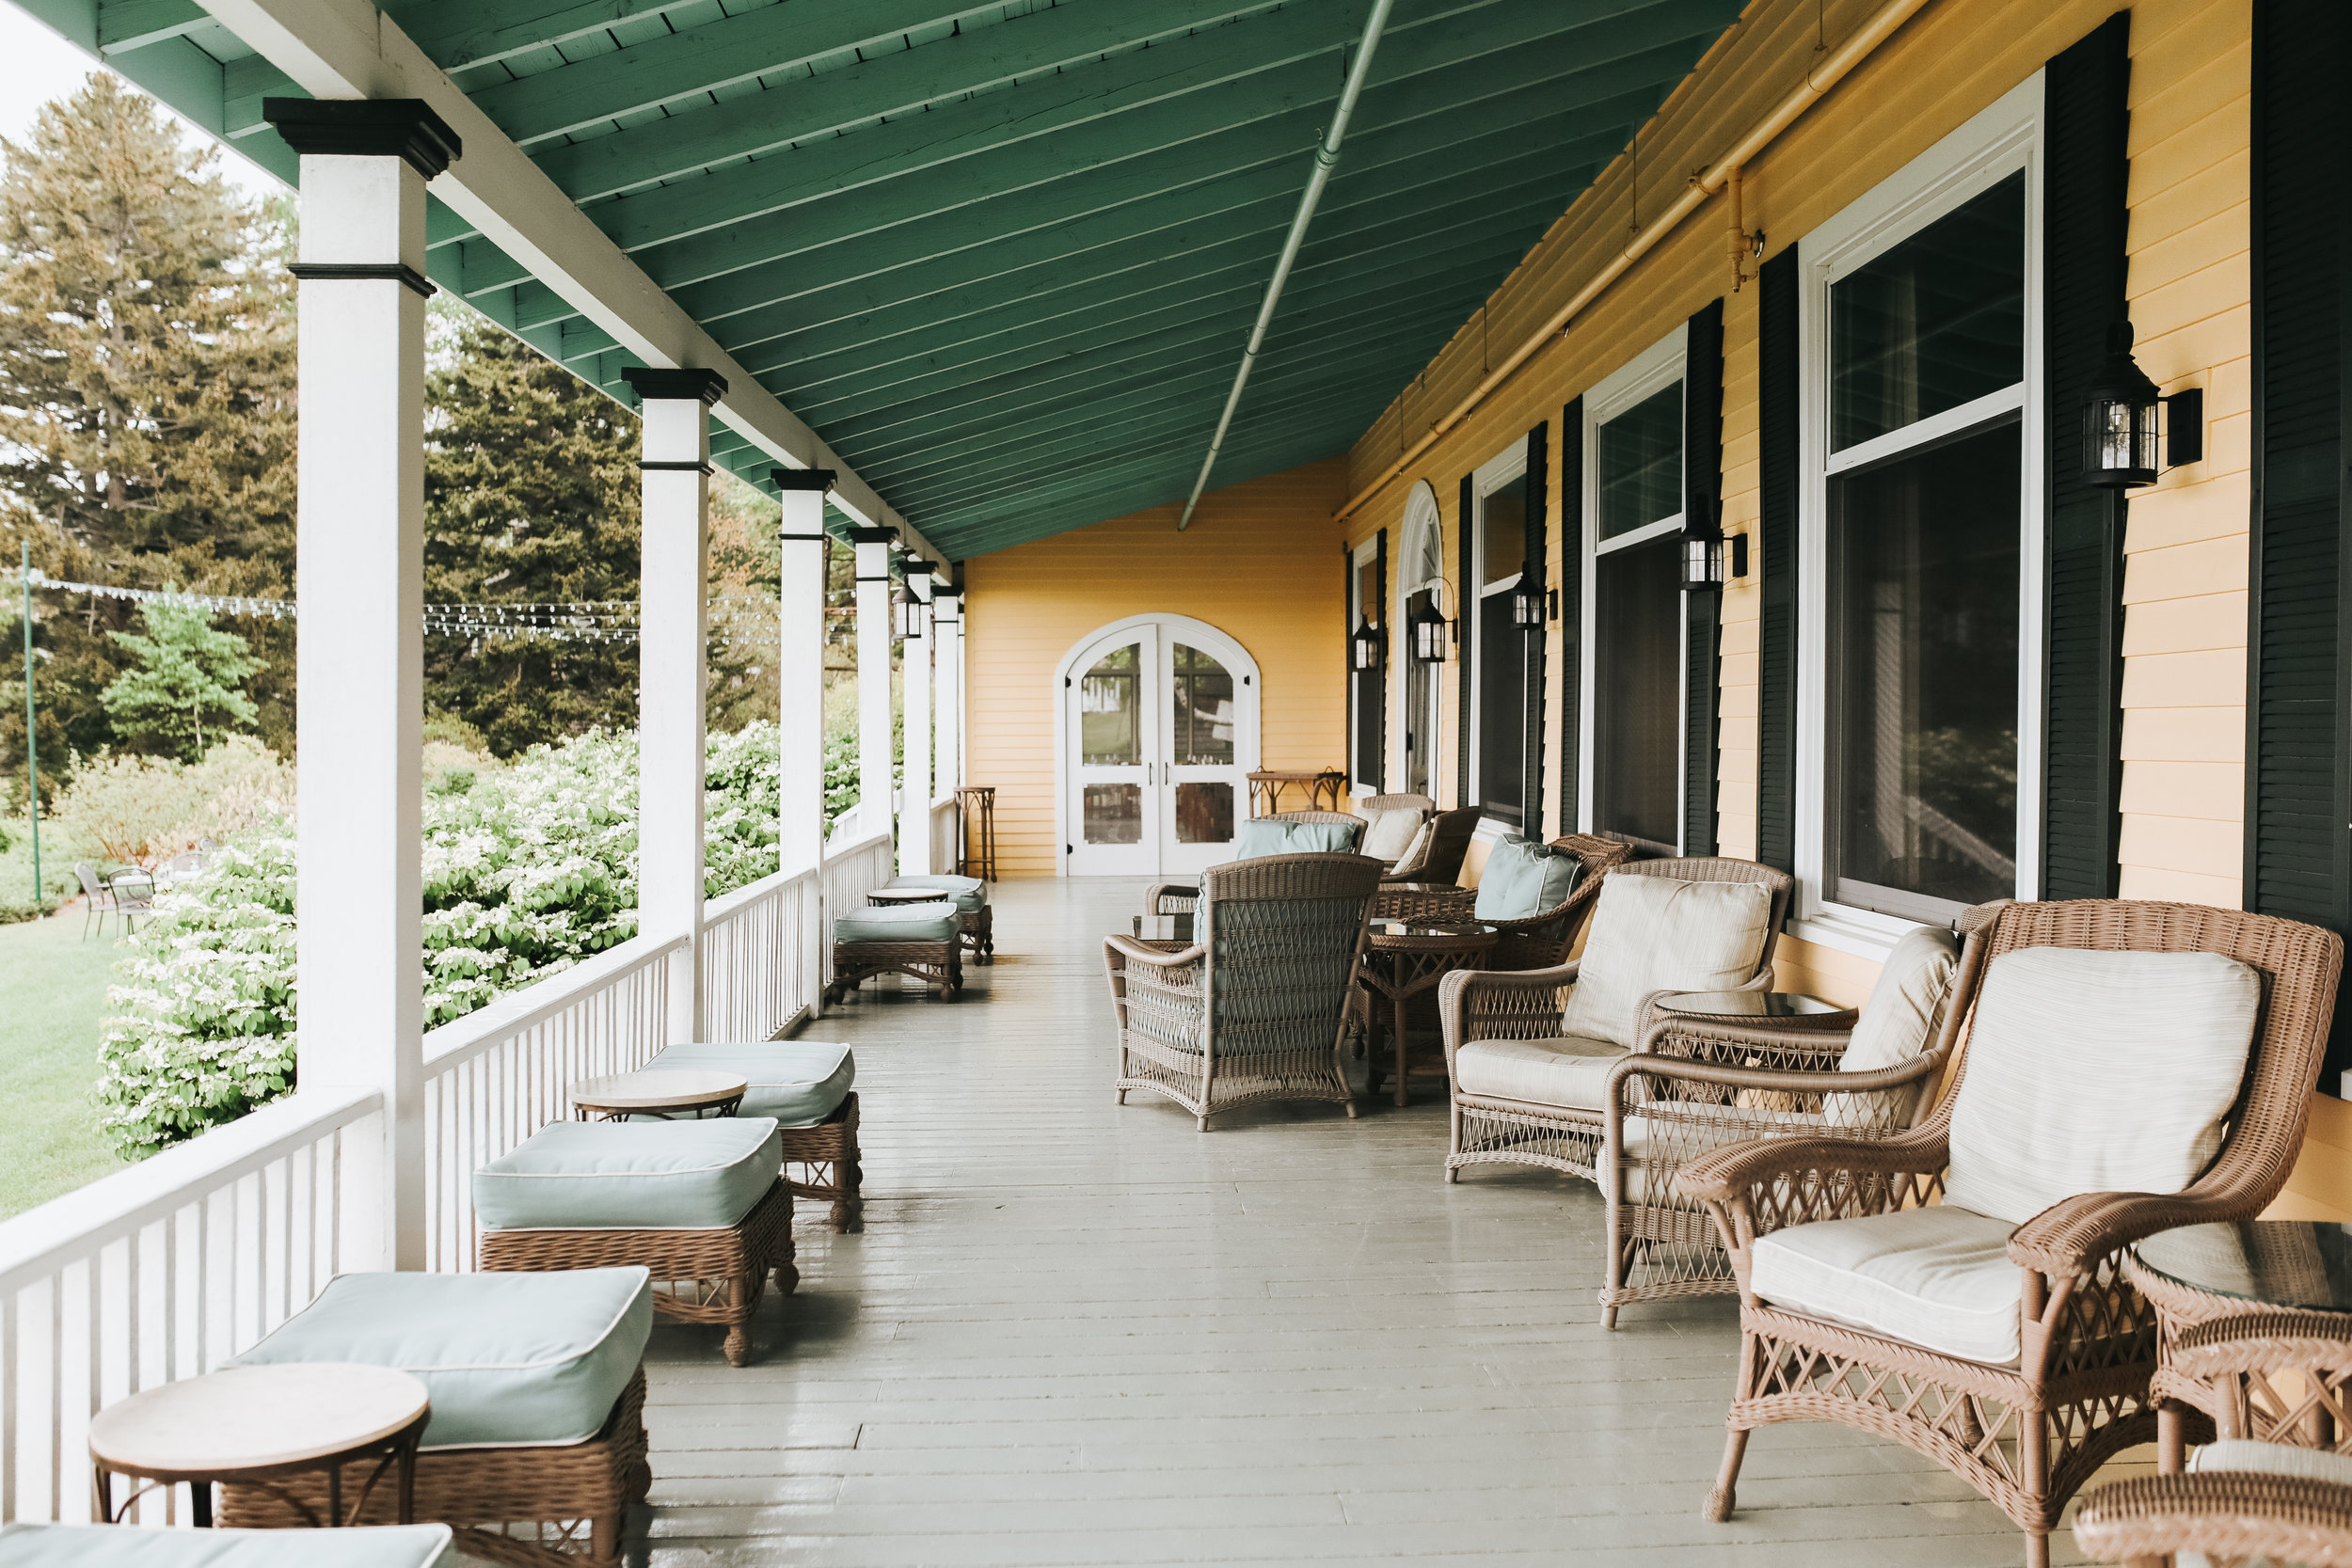 Chebeague Island Inn covered porch